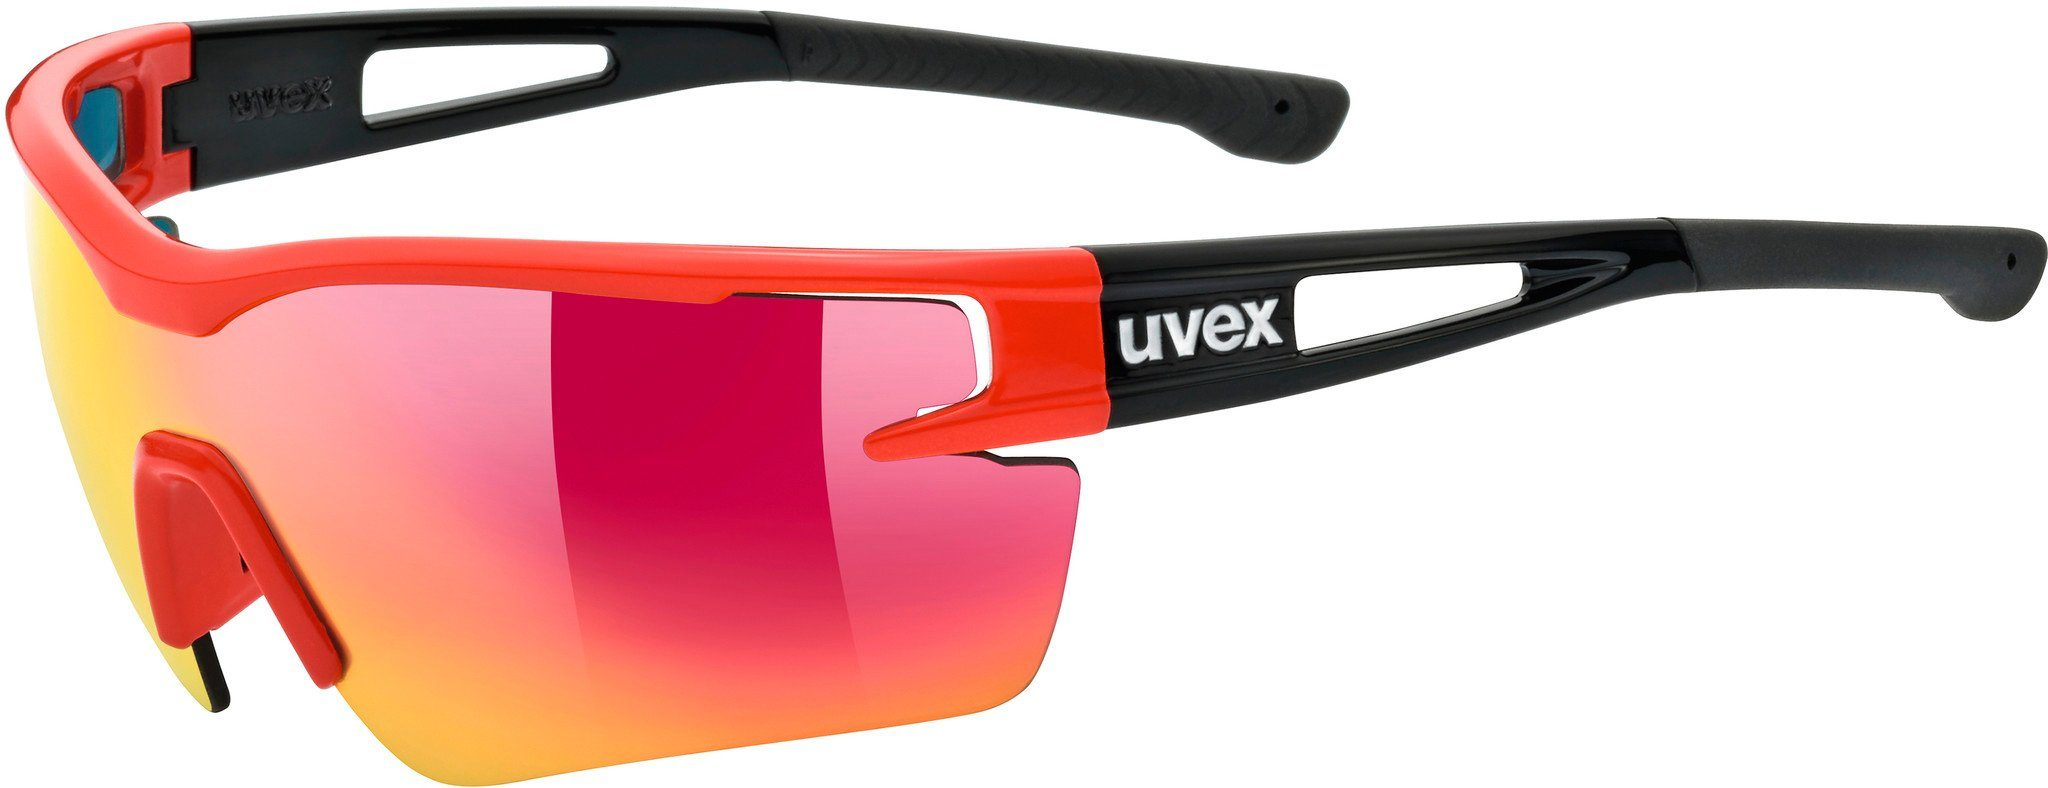 Uvex Sportbrille »sportstyle 116 Glasses«